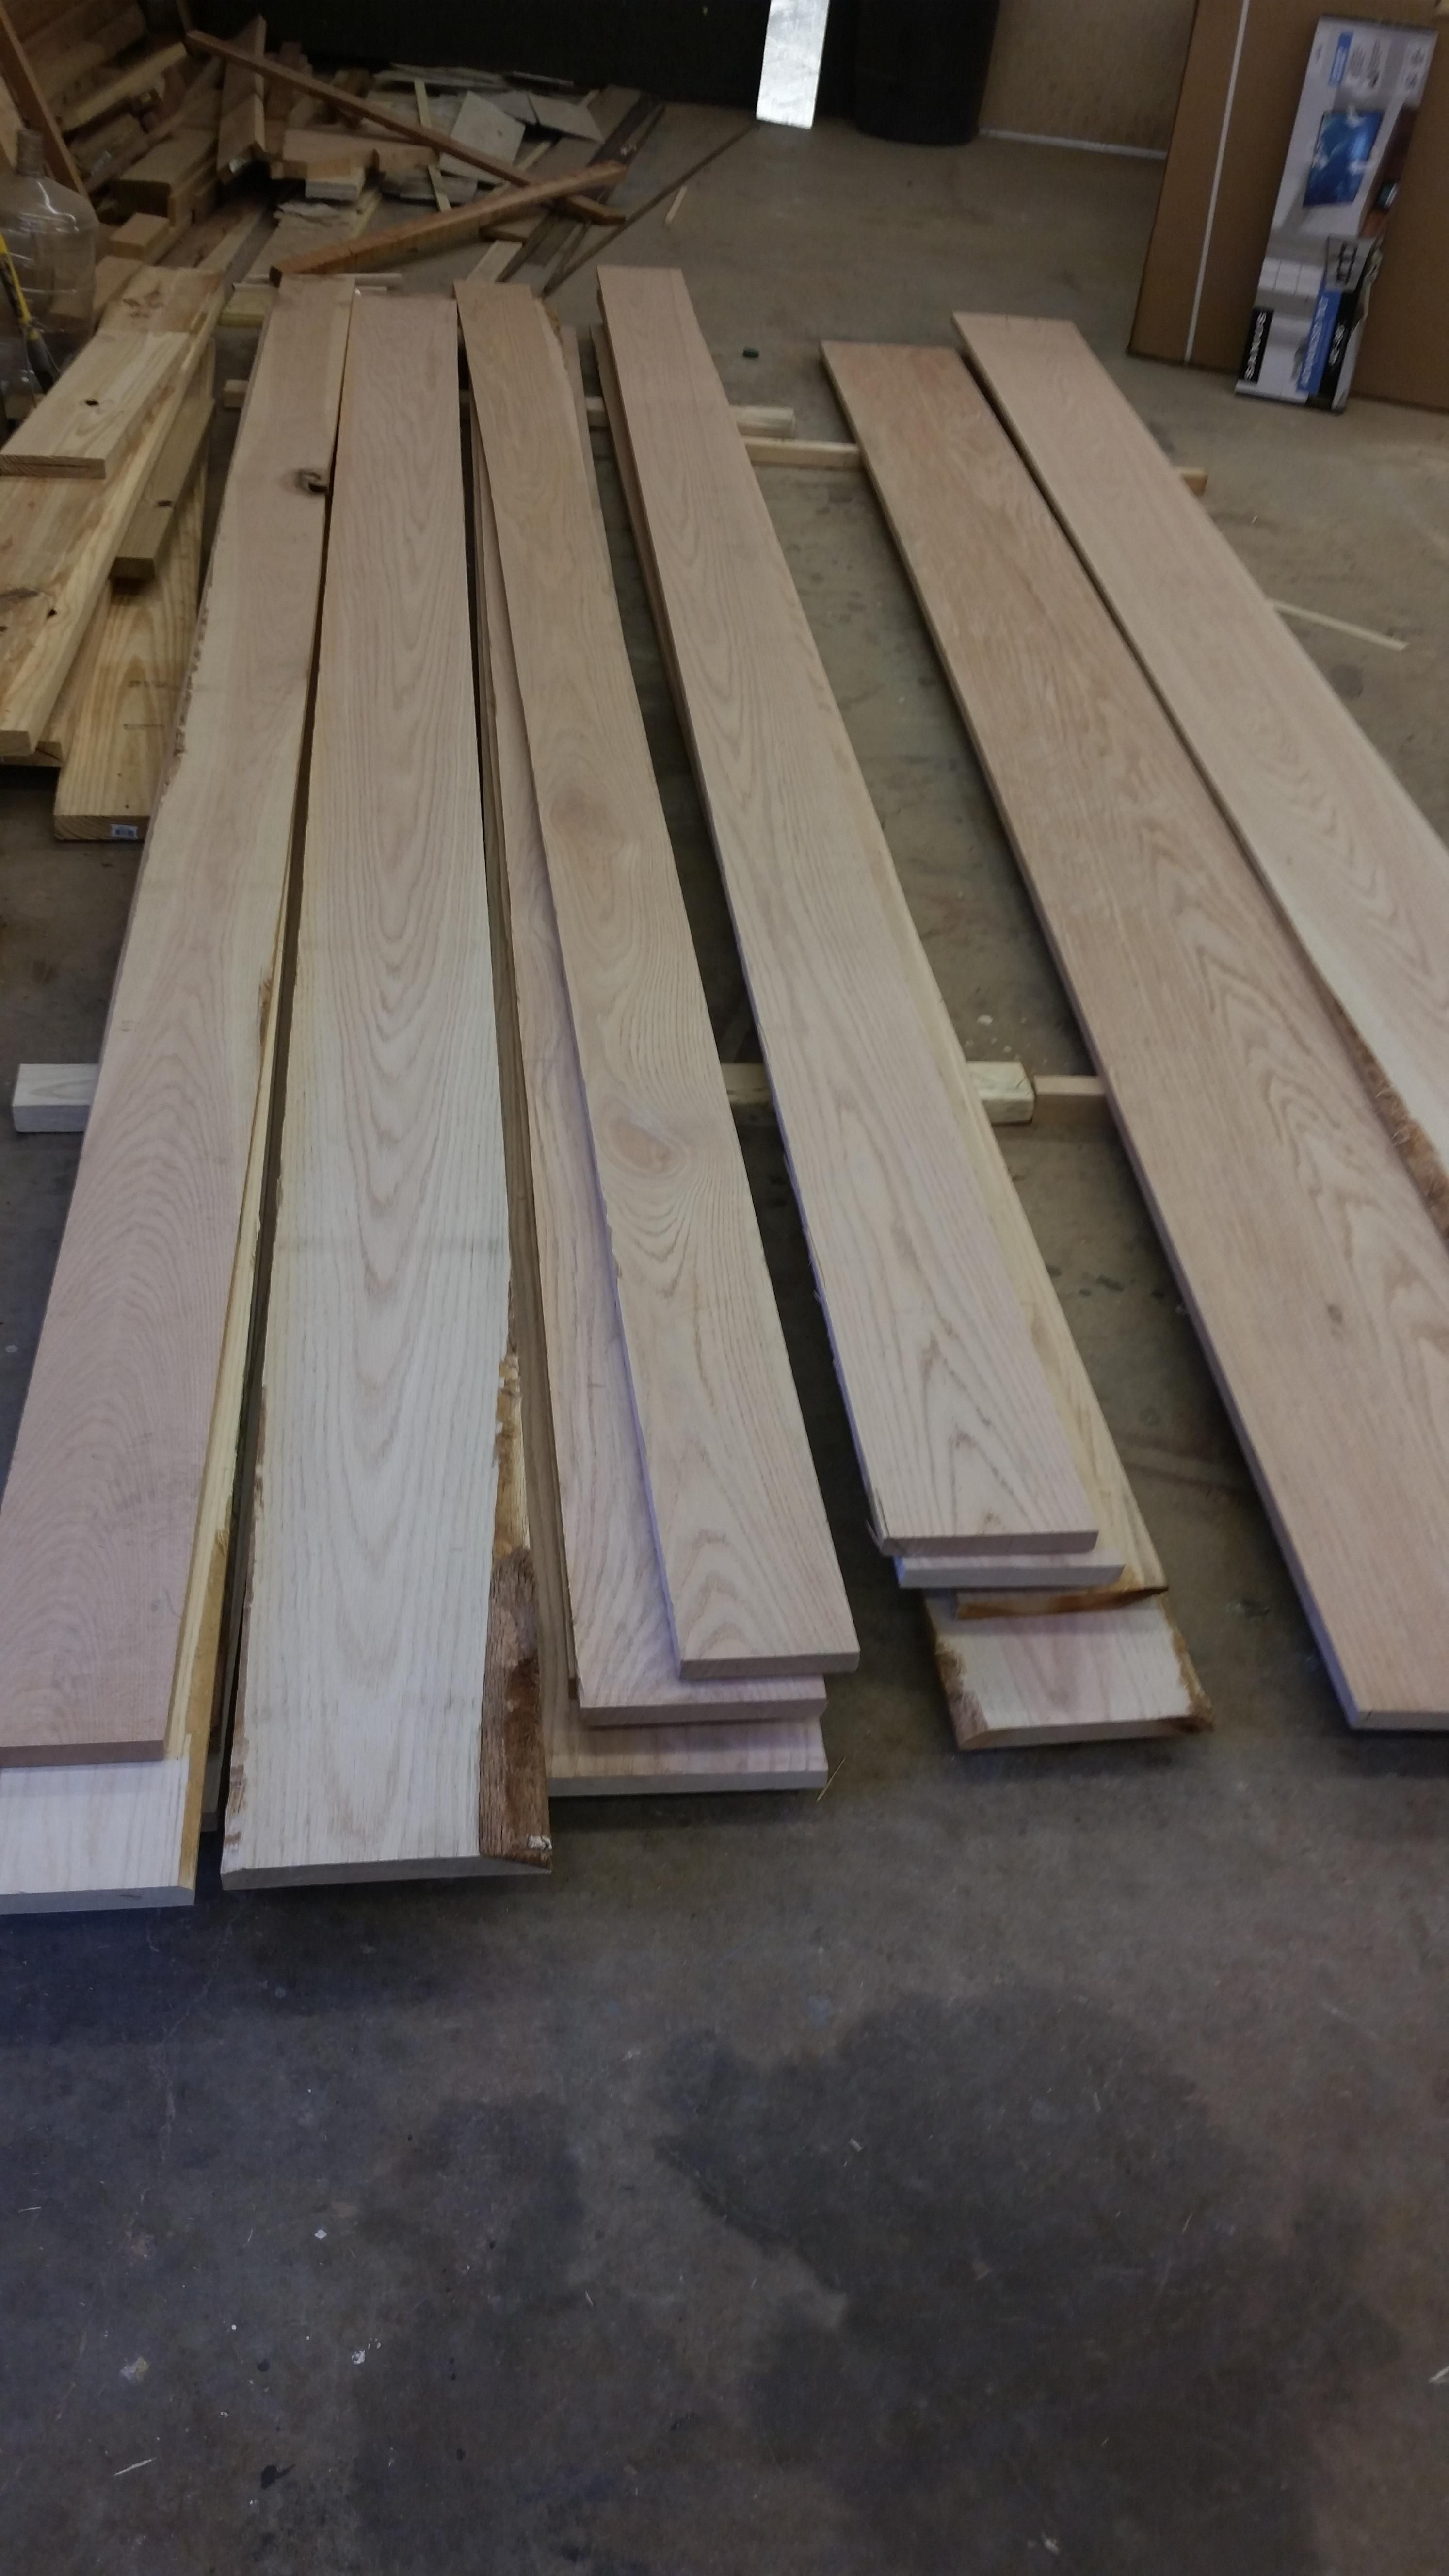 red oak hardwood flooring lowes of i can start the staircase now 207 board feet of red oak http ift with 207 board feet of red oak http